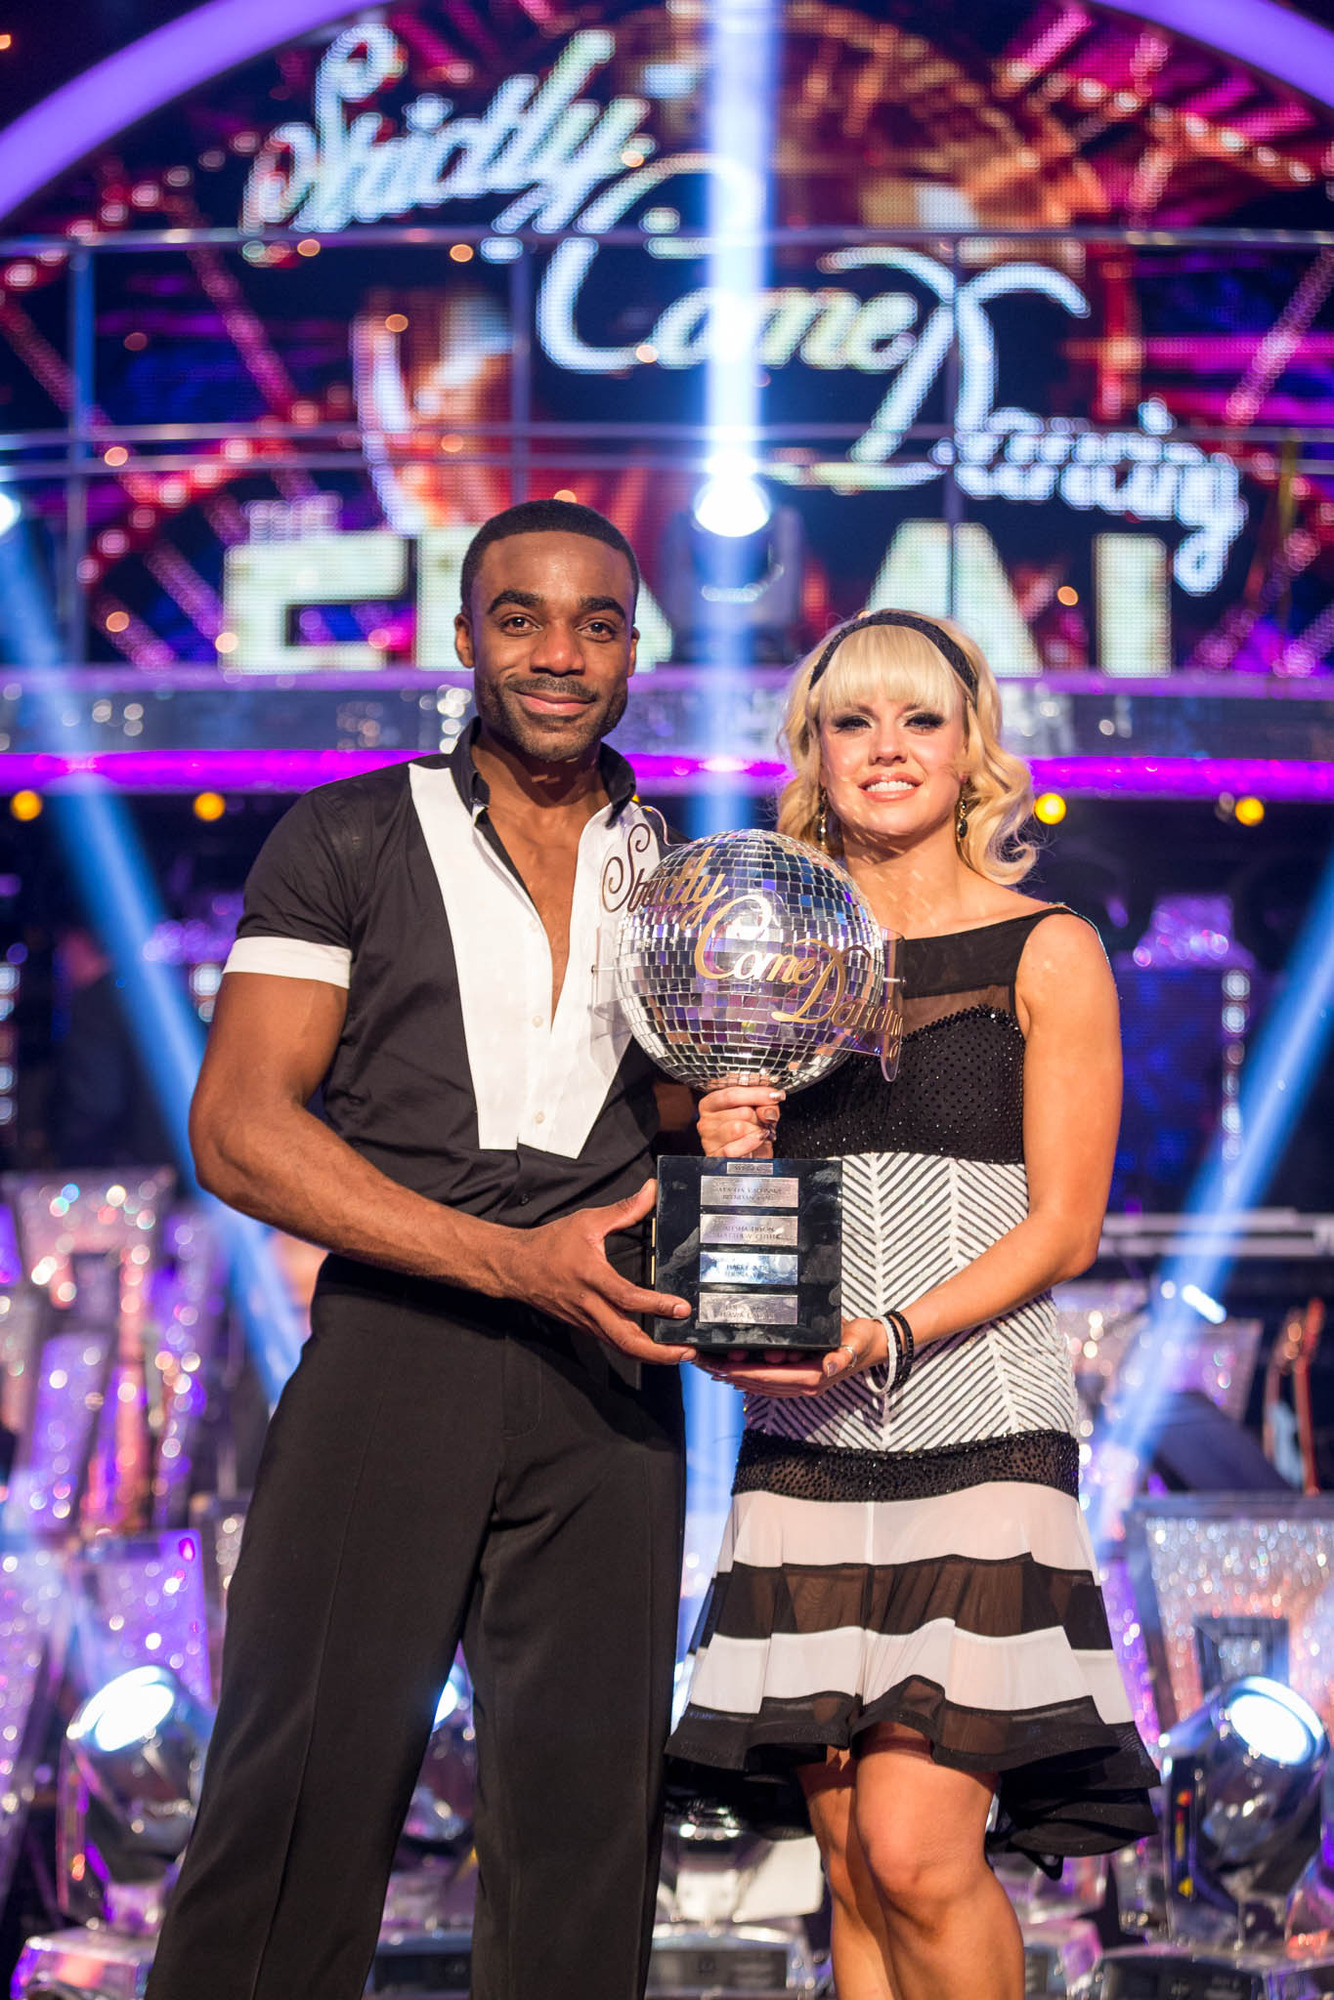 STRICTLY COME DANCING 2016 WINNERS** Joanne Clifton, Ore Oduba - (C) BBC - Photographer: Guy Levy